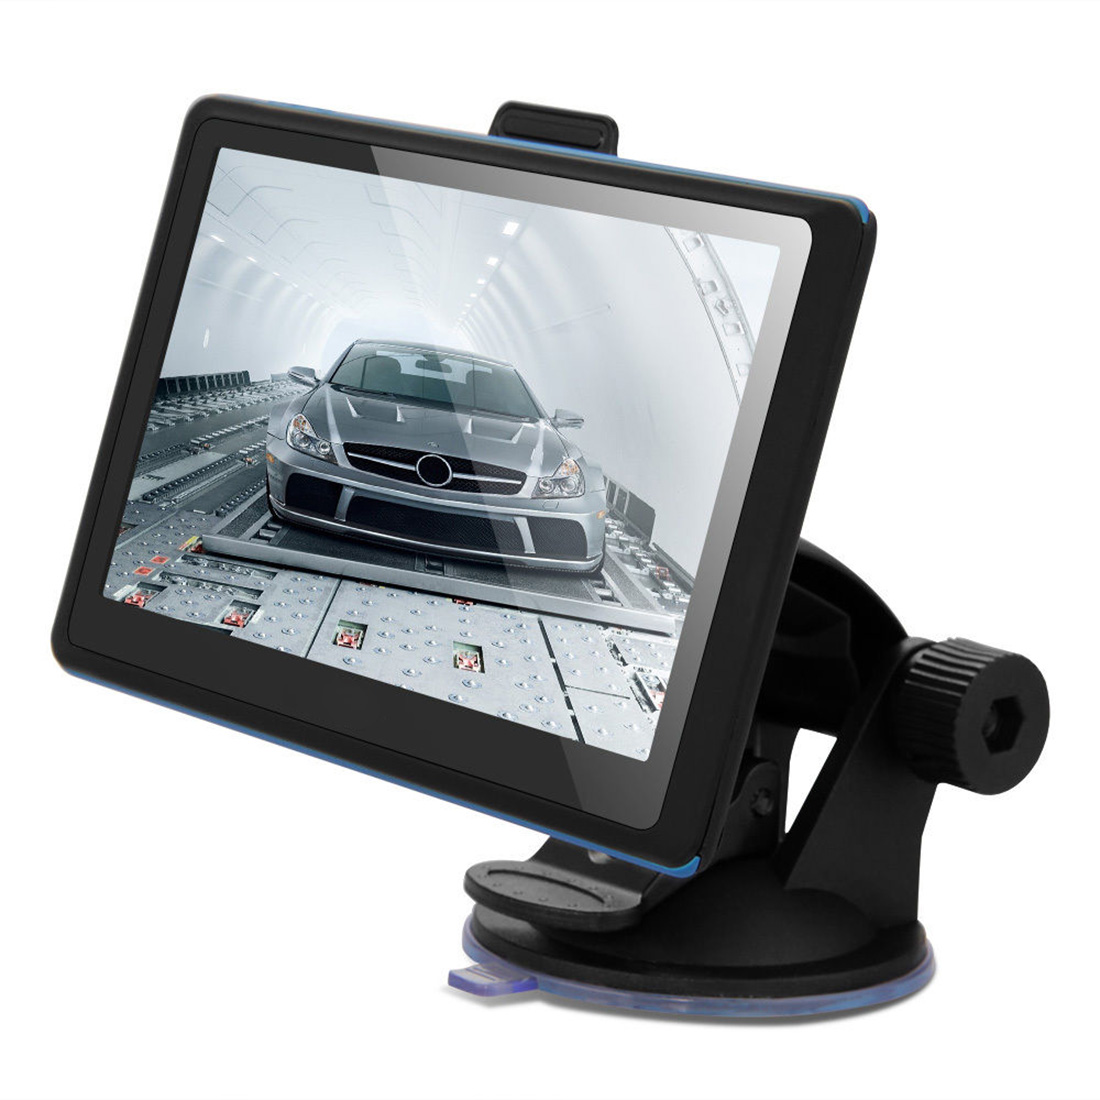 Car Gps  Inch Touch Screen X Resolution Vehicle Car Gps Navigation Support Fm Transmission Gb Europe Map Tkb New